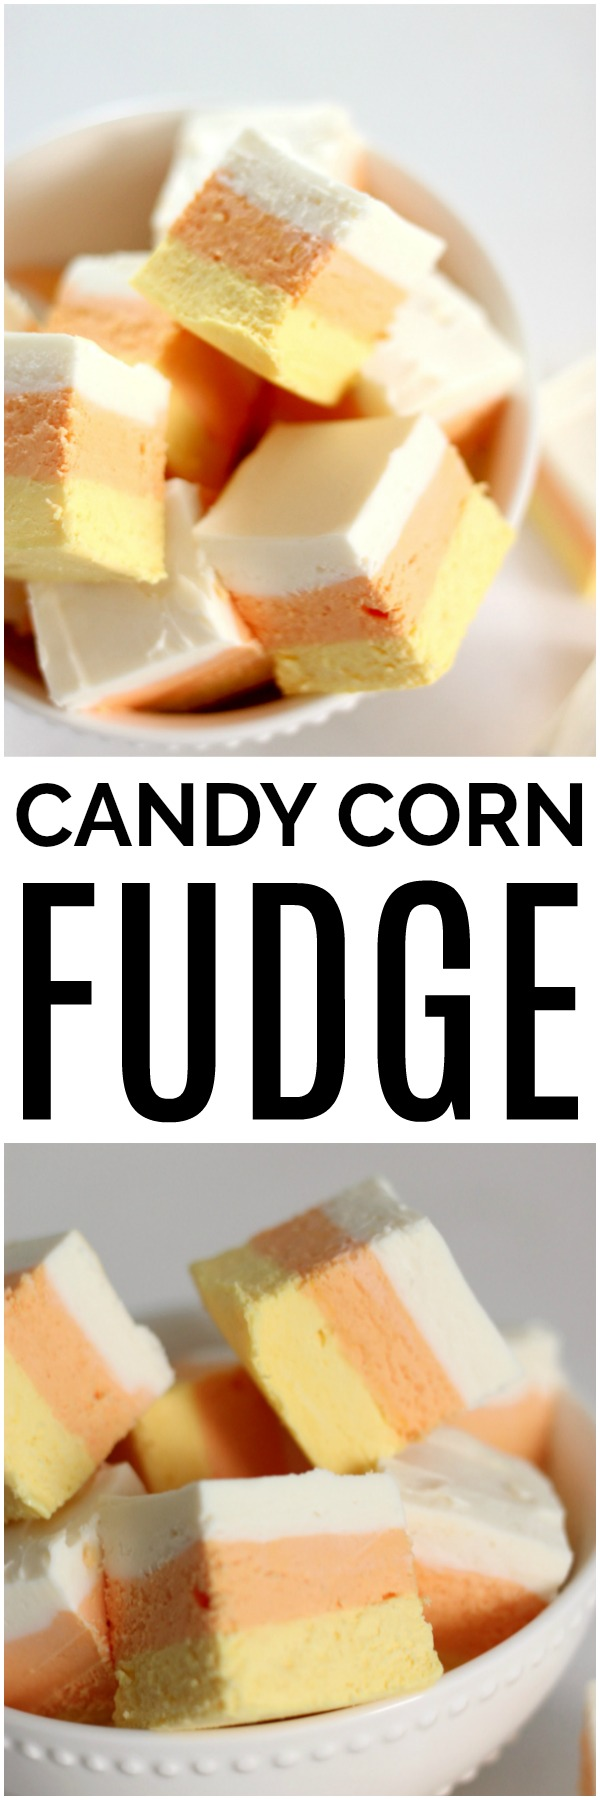 Finished Product Easy Candy Corn Fudge Recipe